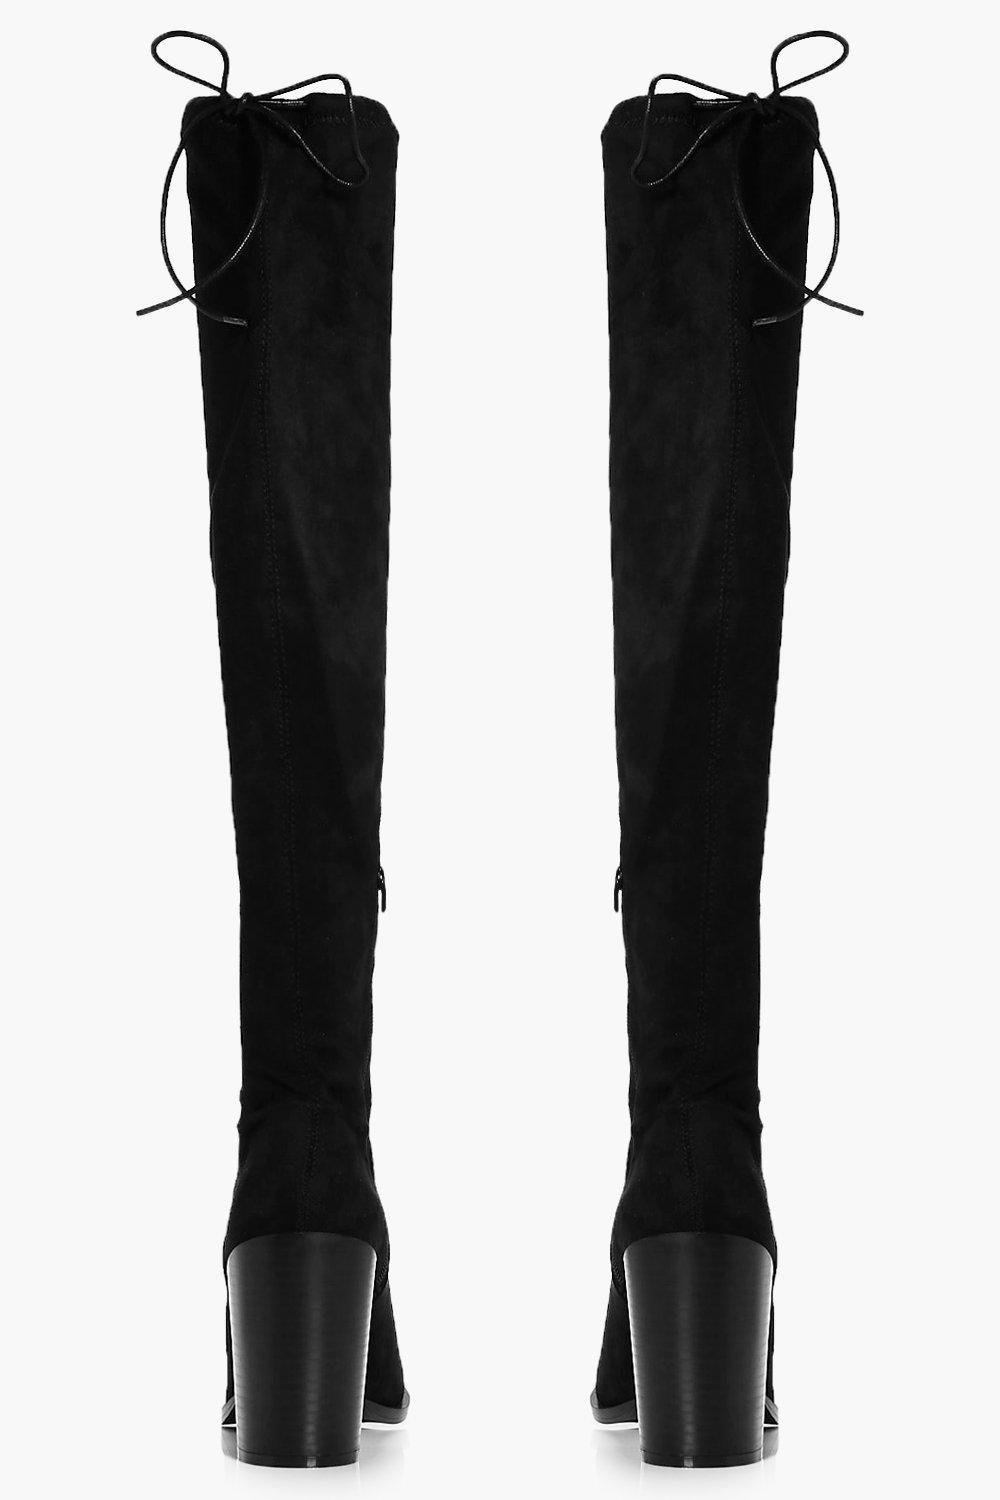 Boohoo Synthetic Tia Pointed Block Heel Over The Knee Boot in Black